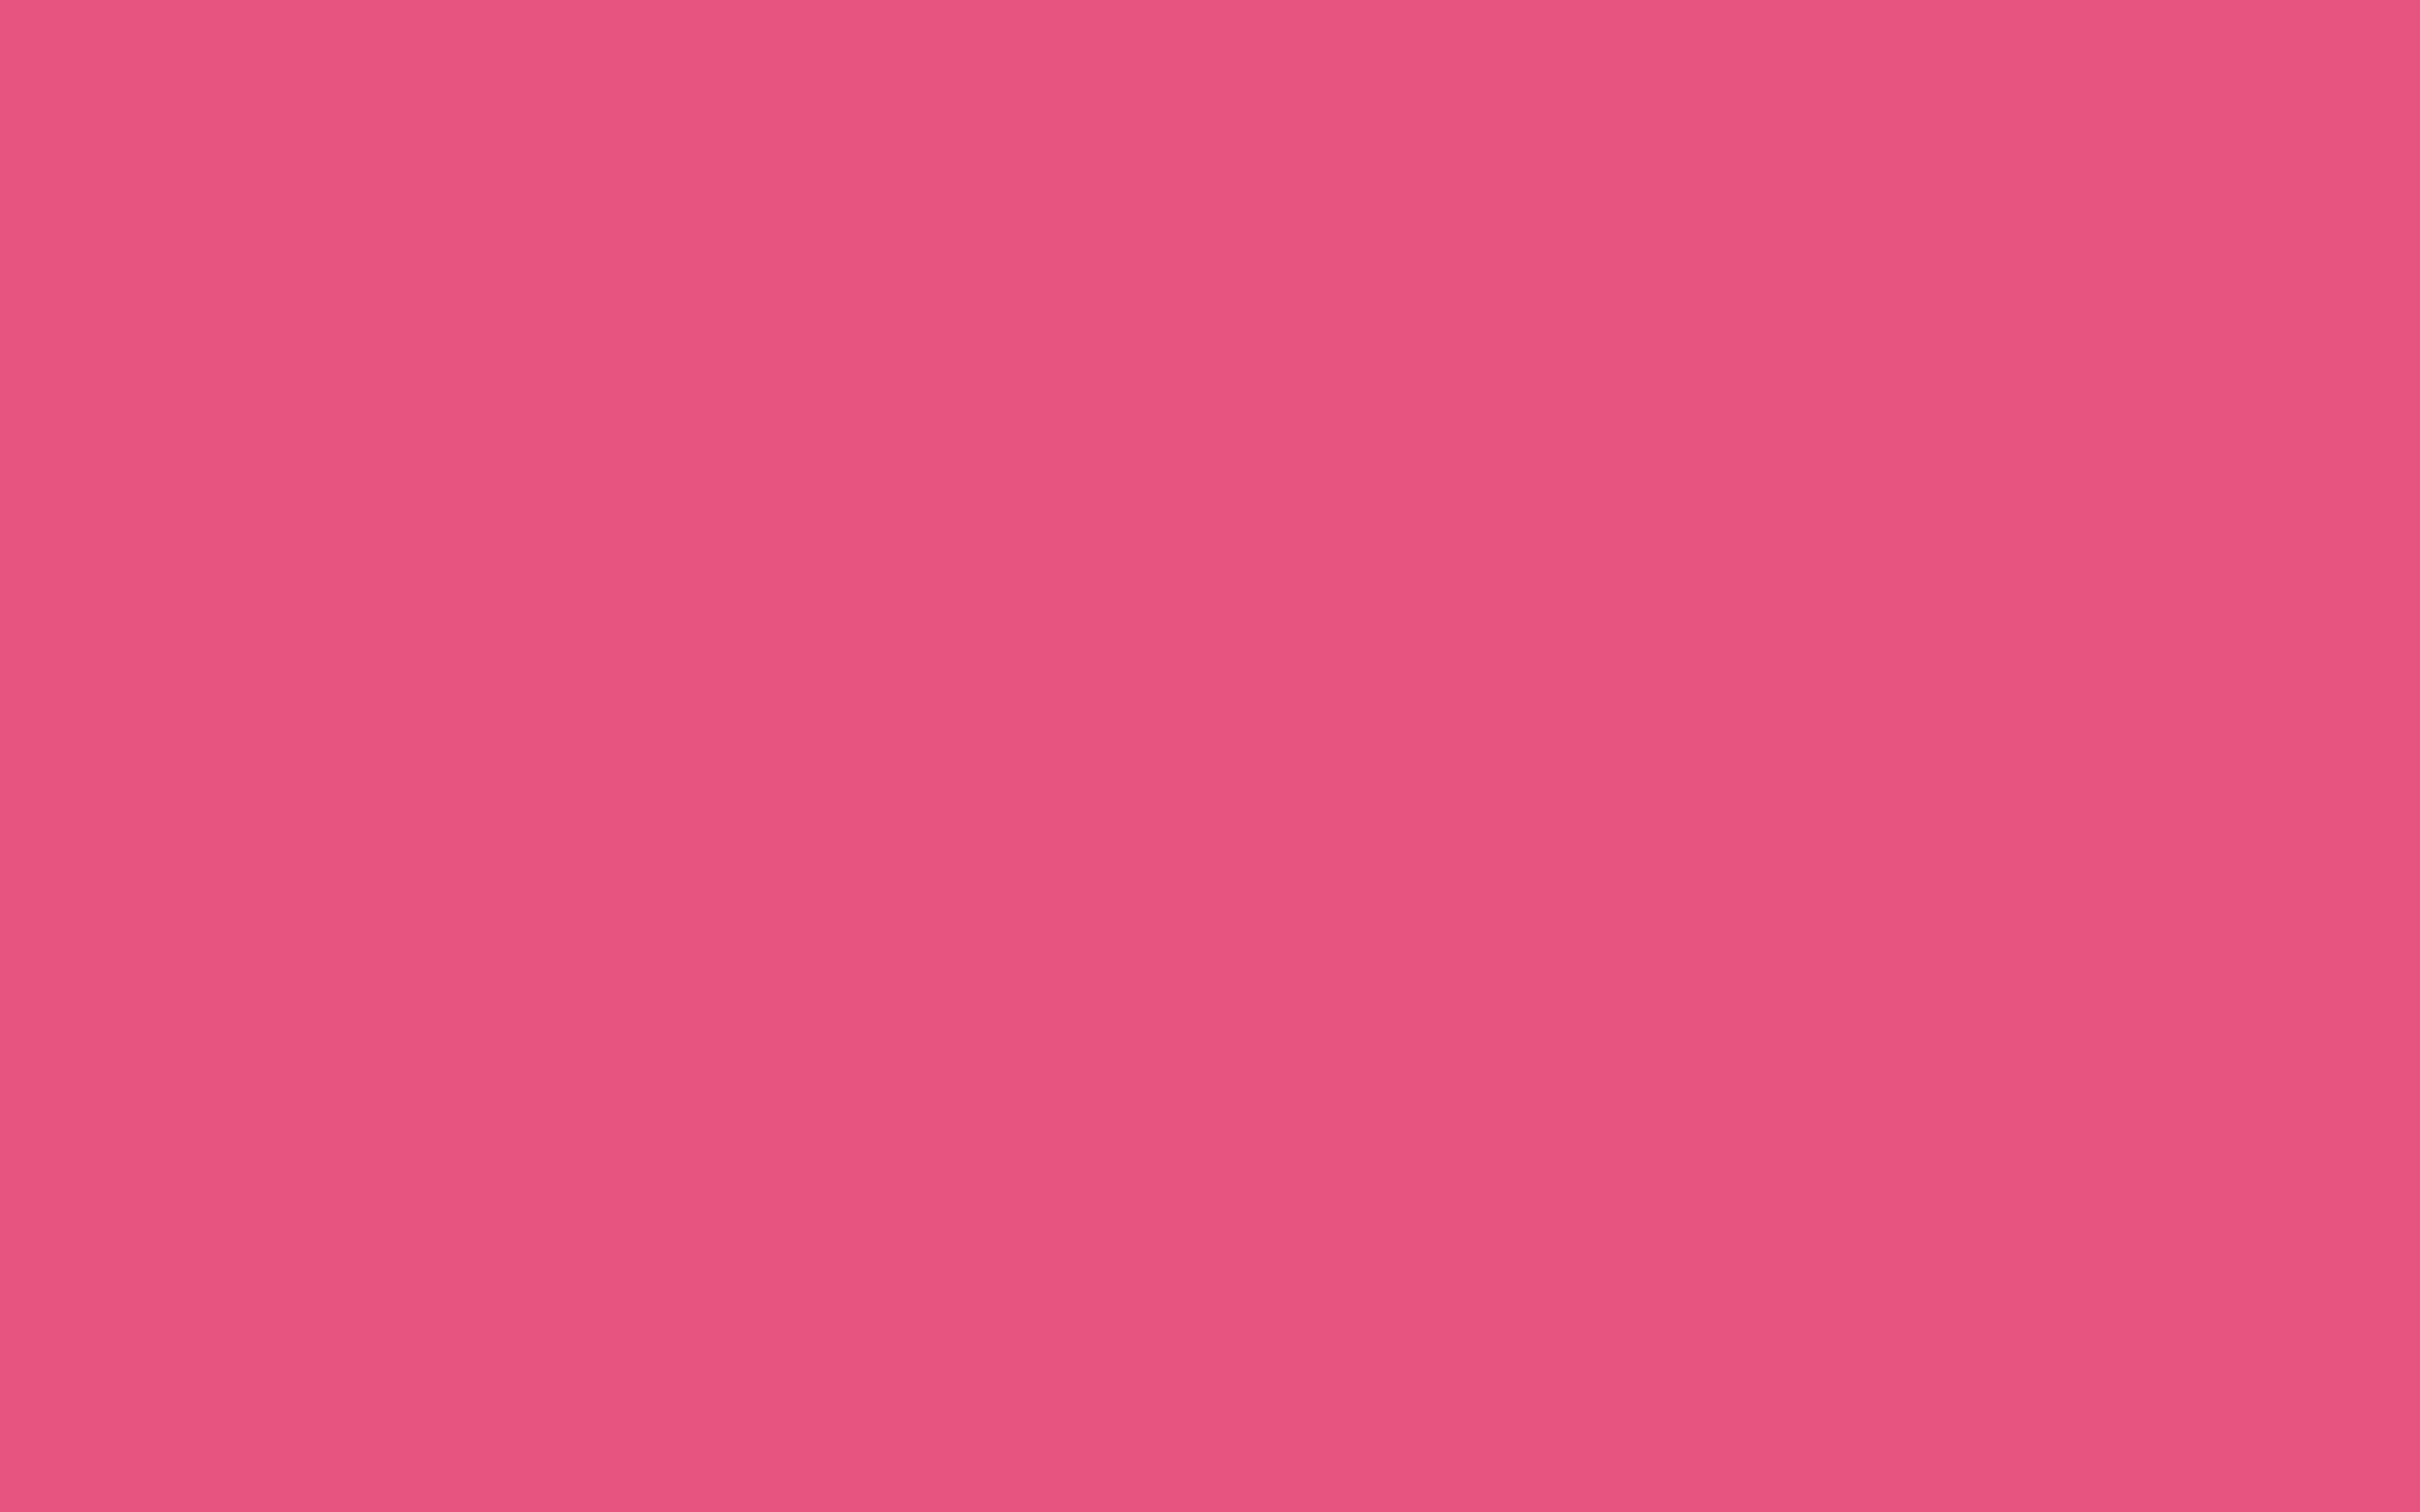 2880x1800 Dark Pink Solid Color Background